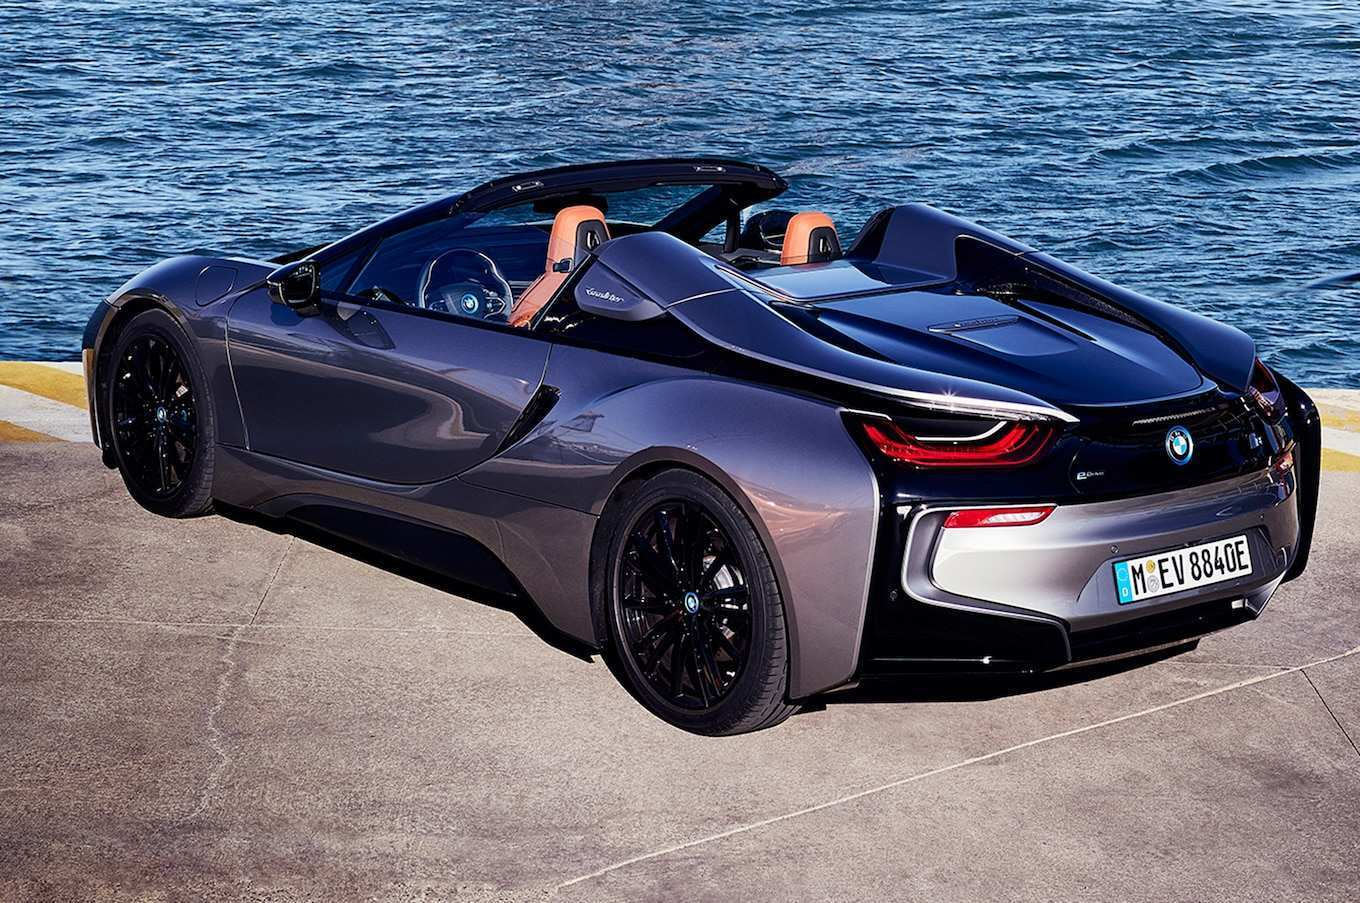 50 All New 2019 Bmw I8 Roadster Review And Release Date